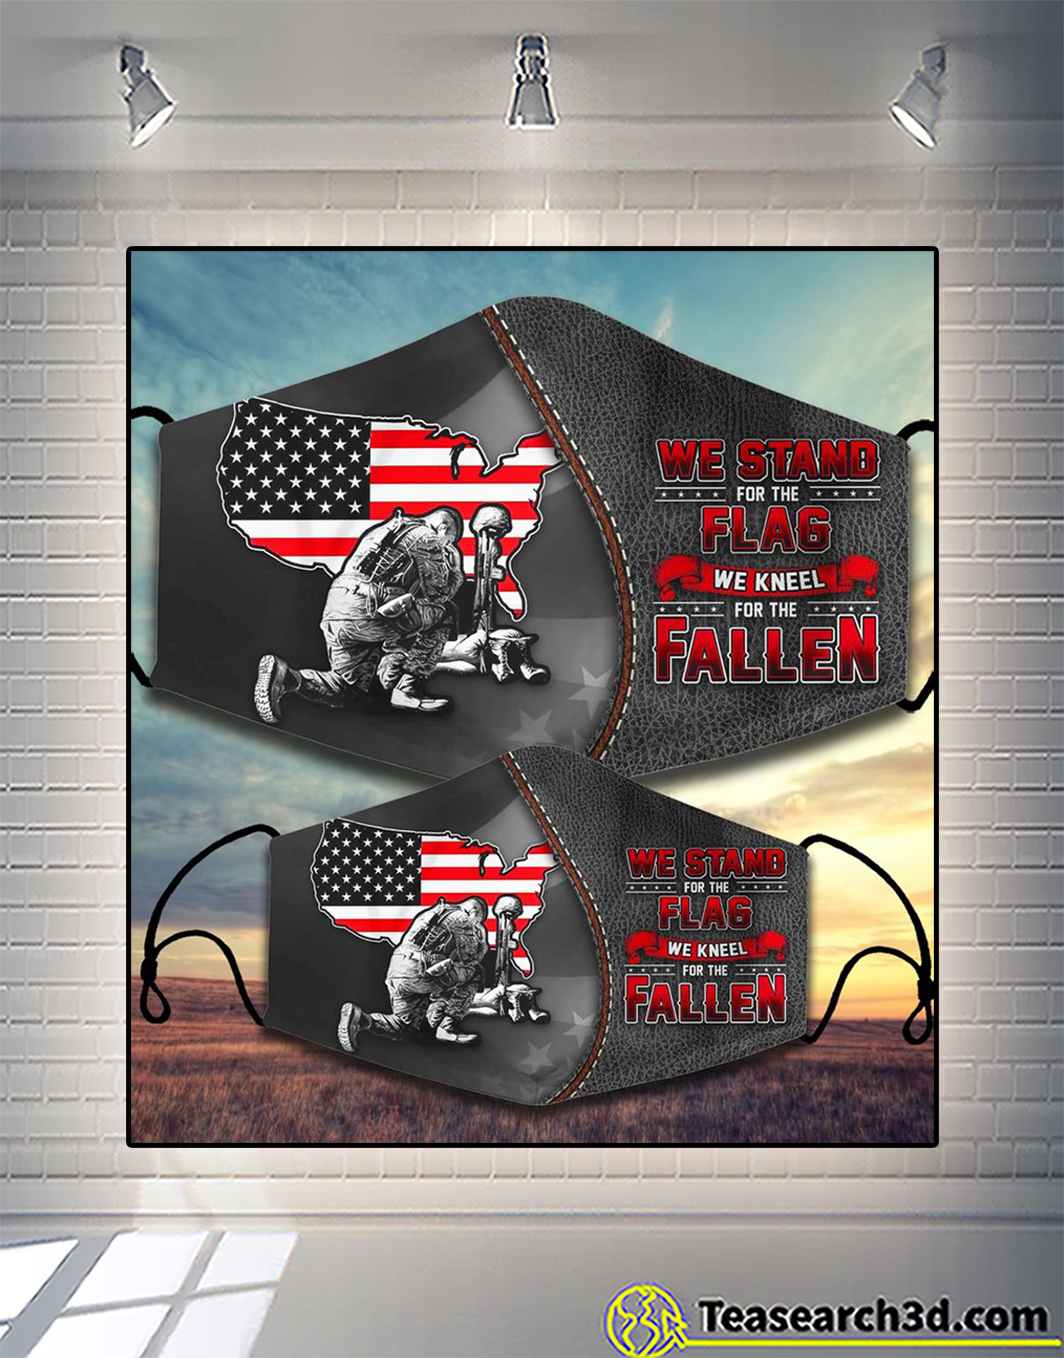 We stand for the flag we kneel for the fallen face mask